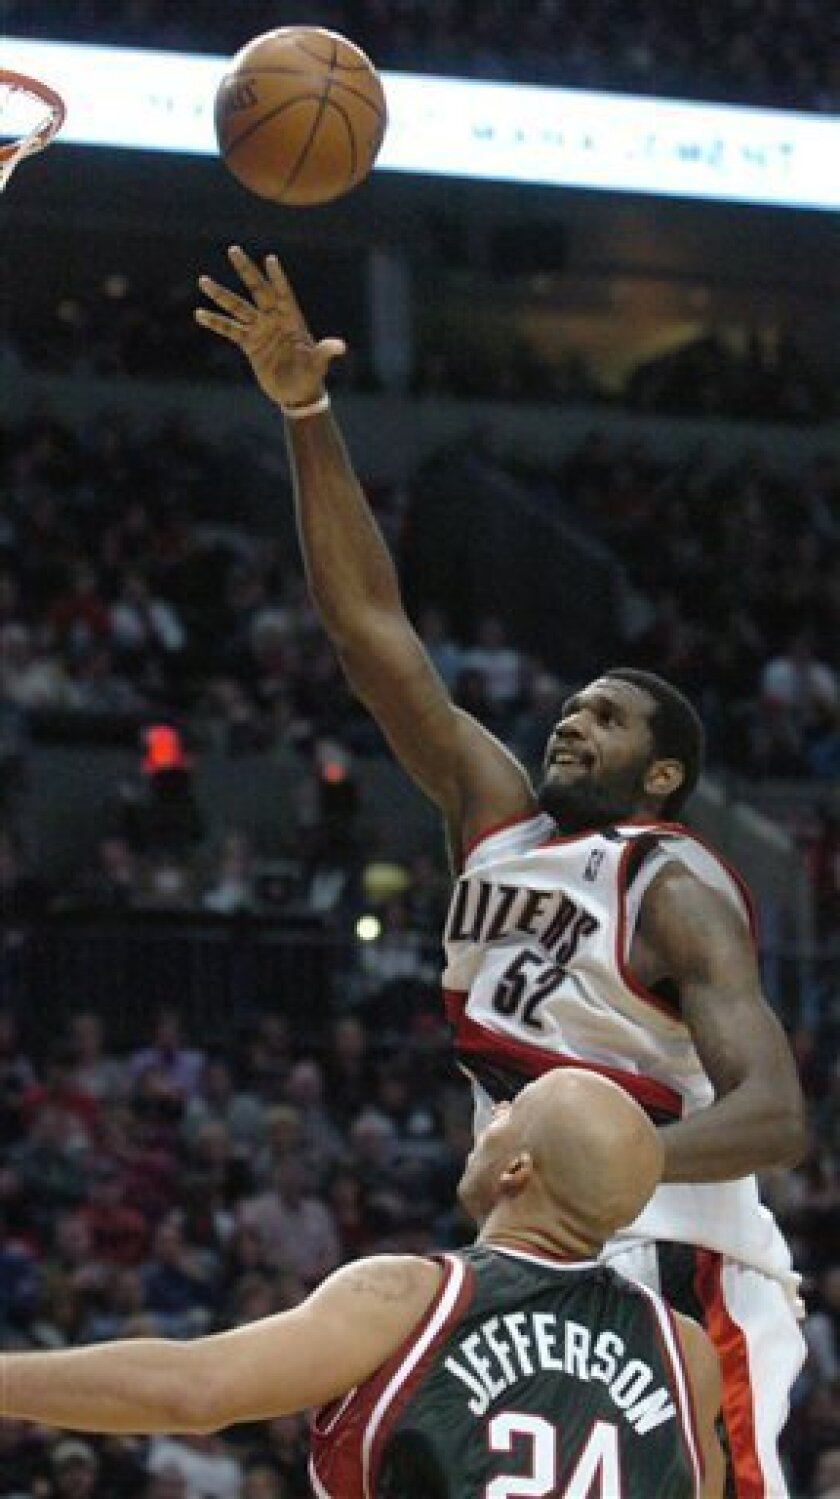 Portland Trail Blazers' Greg Oden (52) shoots over Milwaukee Bucks' Richard Jefferson (24) during the second half of an NBA basketball game in Portland, Ore., Monday, Jan. 19, 2009. Oden had a career-high 24 points and added 15 rebounds in the Trail Blazers' 102-85 victory over the Bucks.  (AP Phot